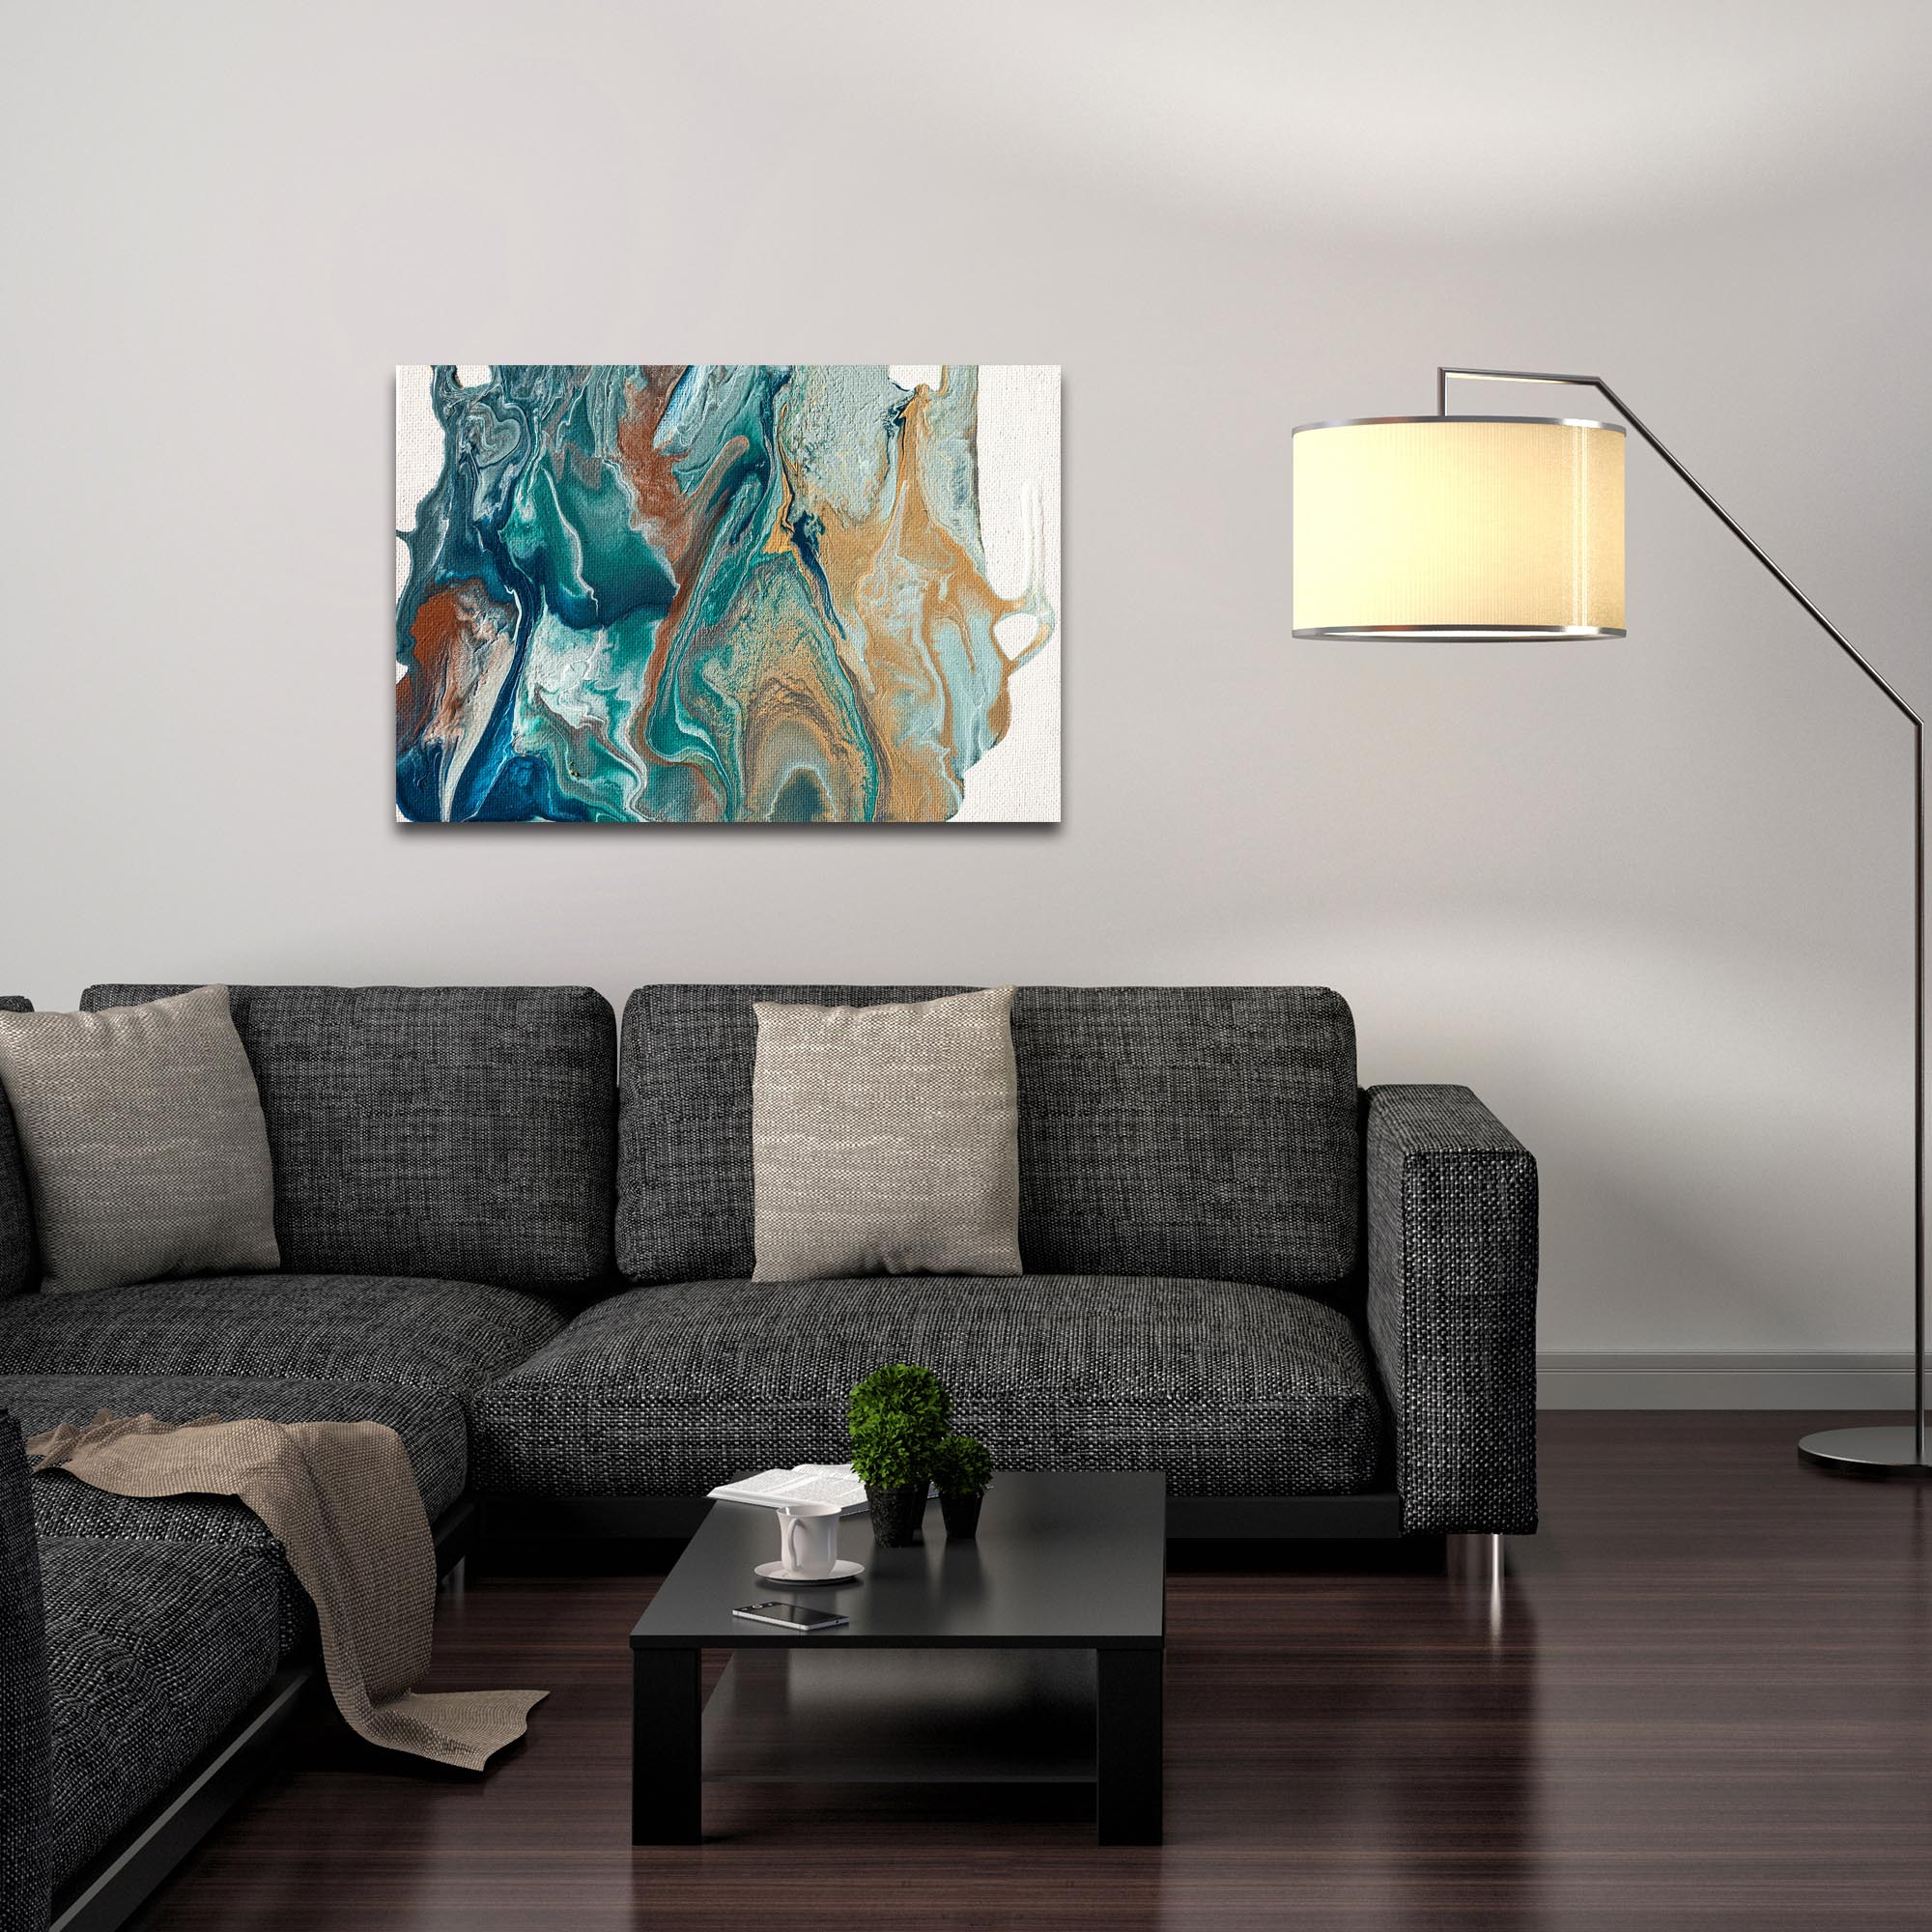 Abstract Wall Art 'Earth 2' - Urban Splatter Decor on Metal or Plexiglass - Lifestyle View